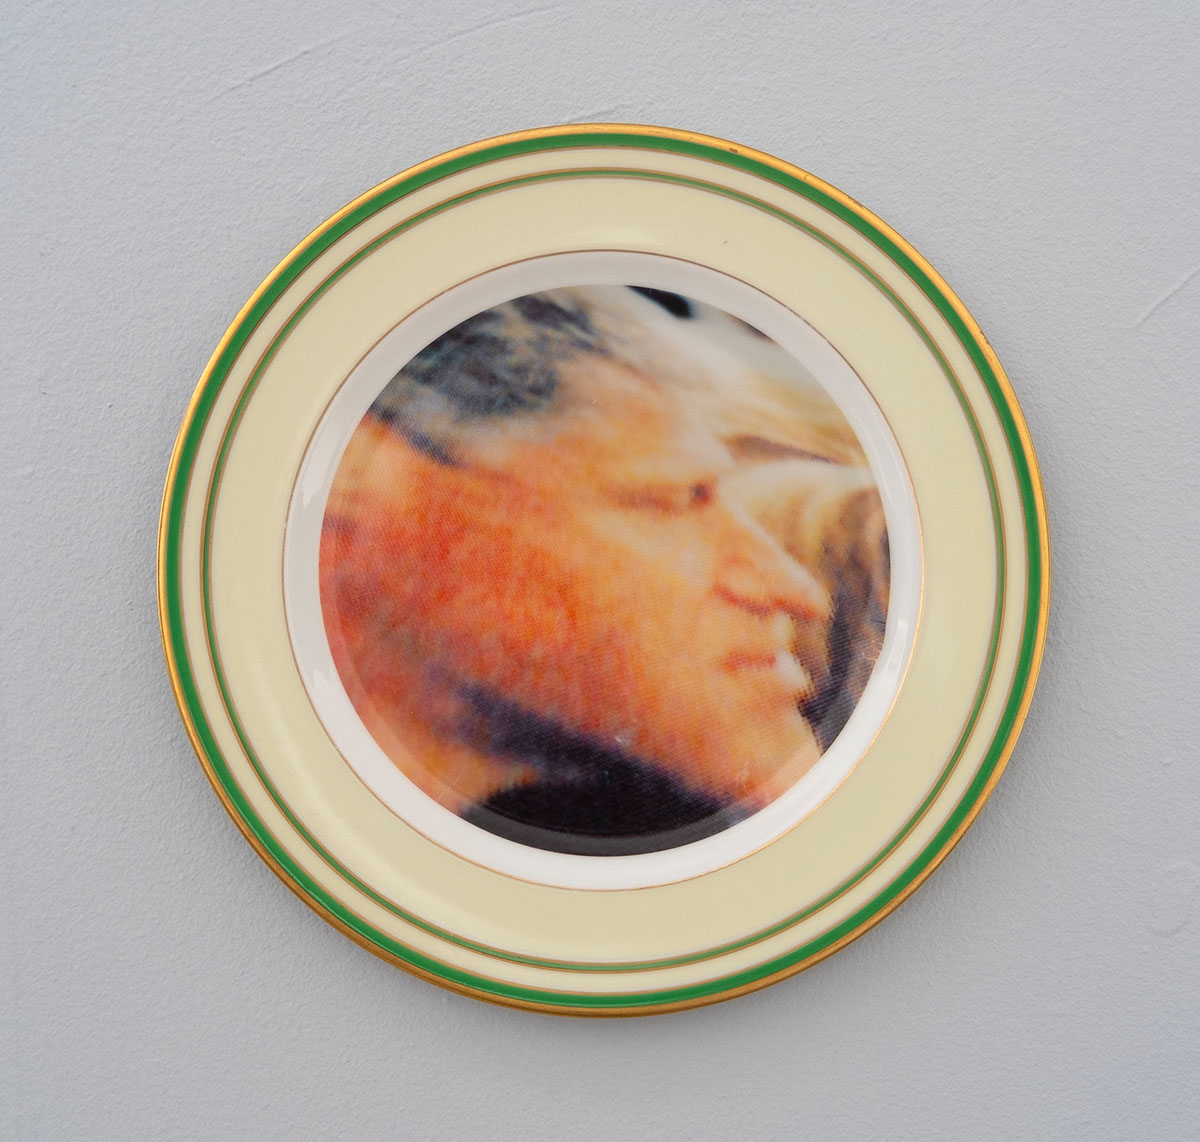 Bill Clinton, 2018; ceramic plate; 10 inch diameter.